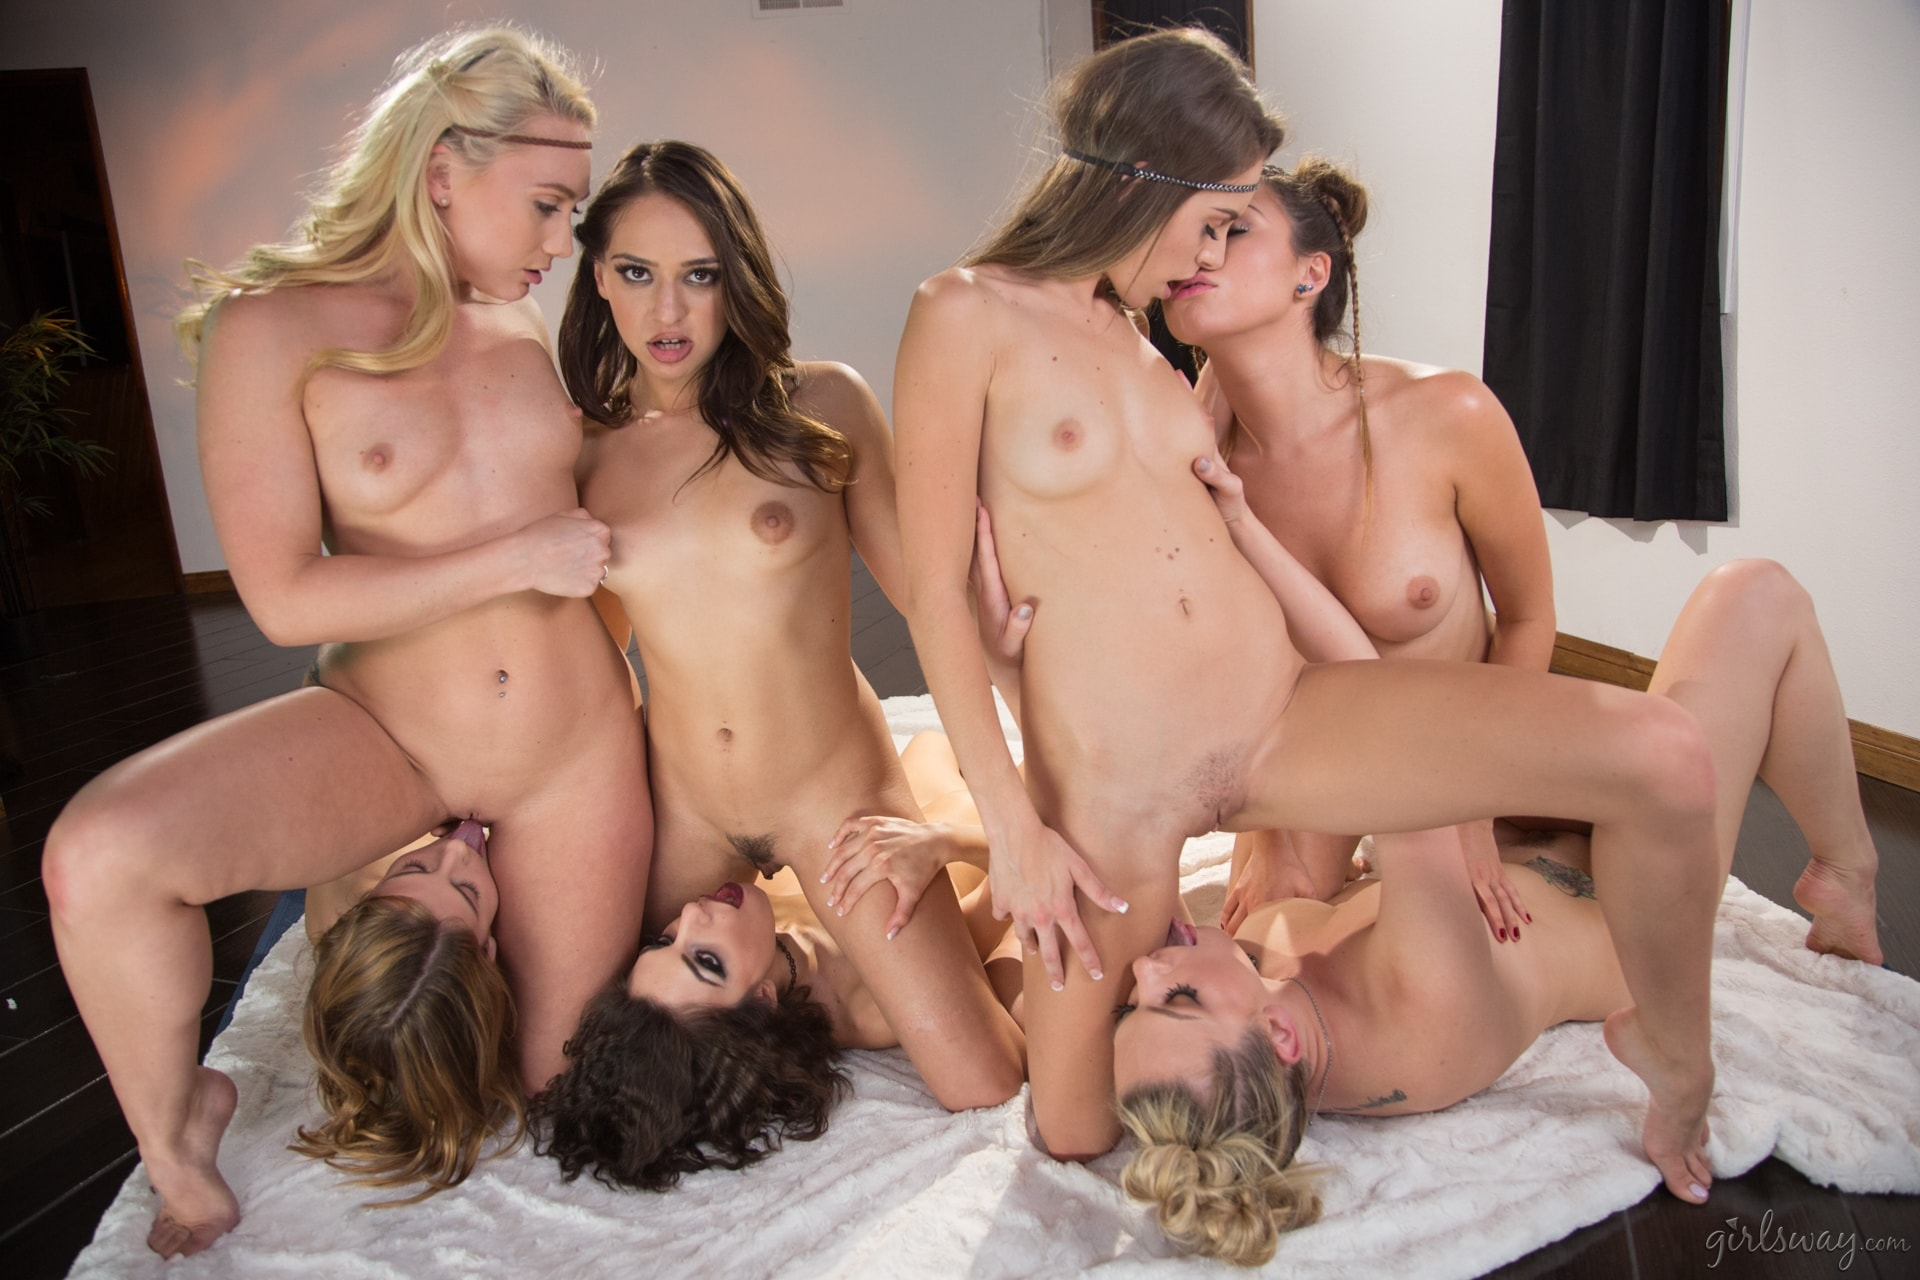 Love spell bree daniels and kenna james 9